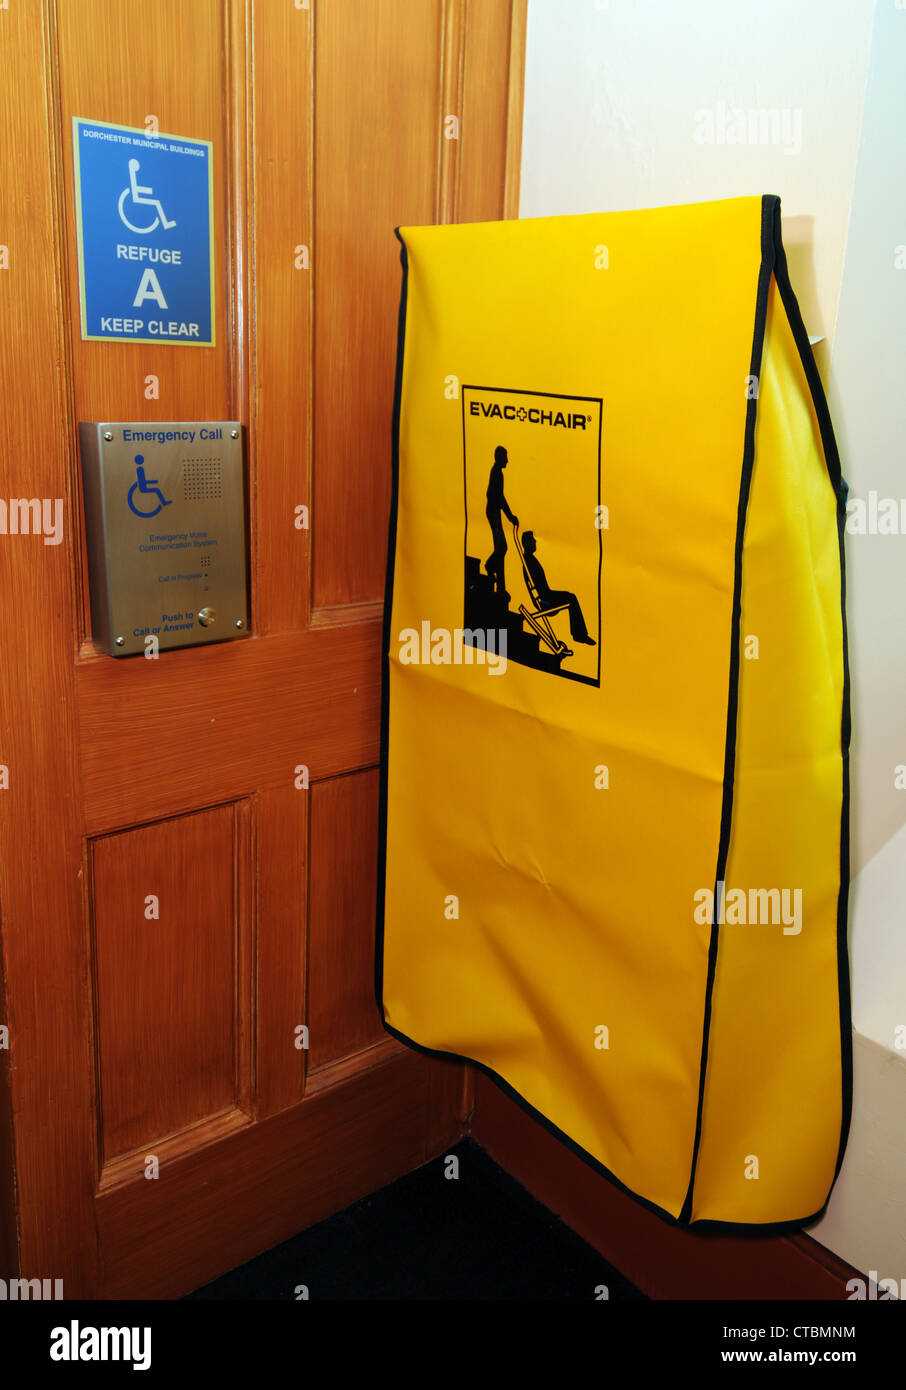 Evac chair, Emergency evacuation chair used for taking disabled ...